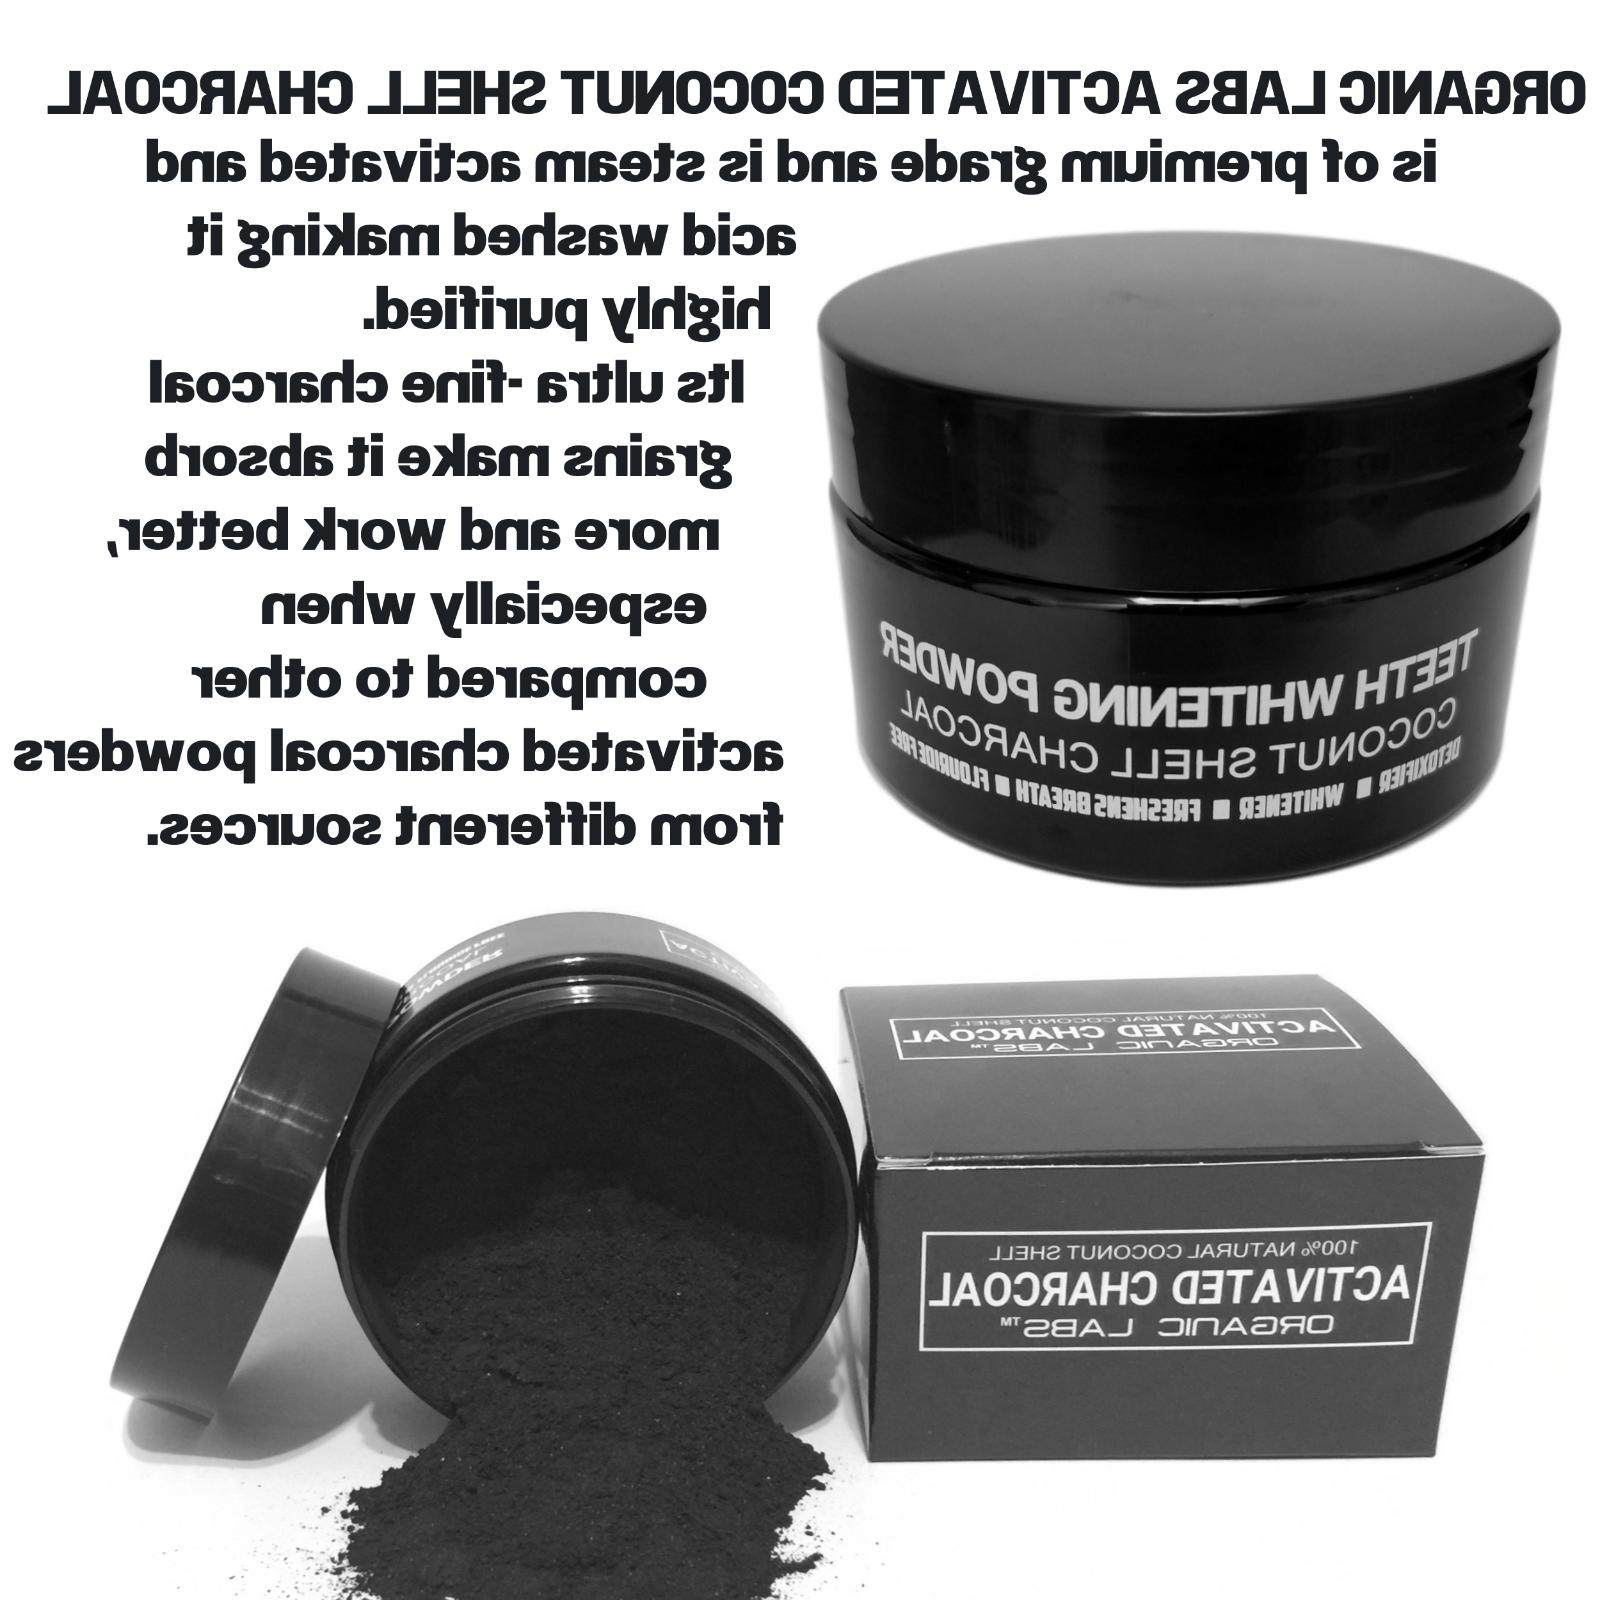 COCONUT ACTIVATED 100% NATURAL TEETH POWDER